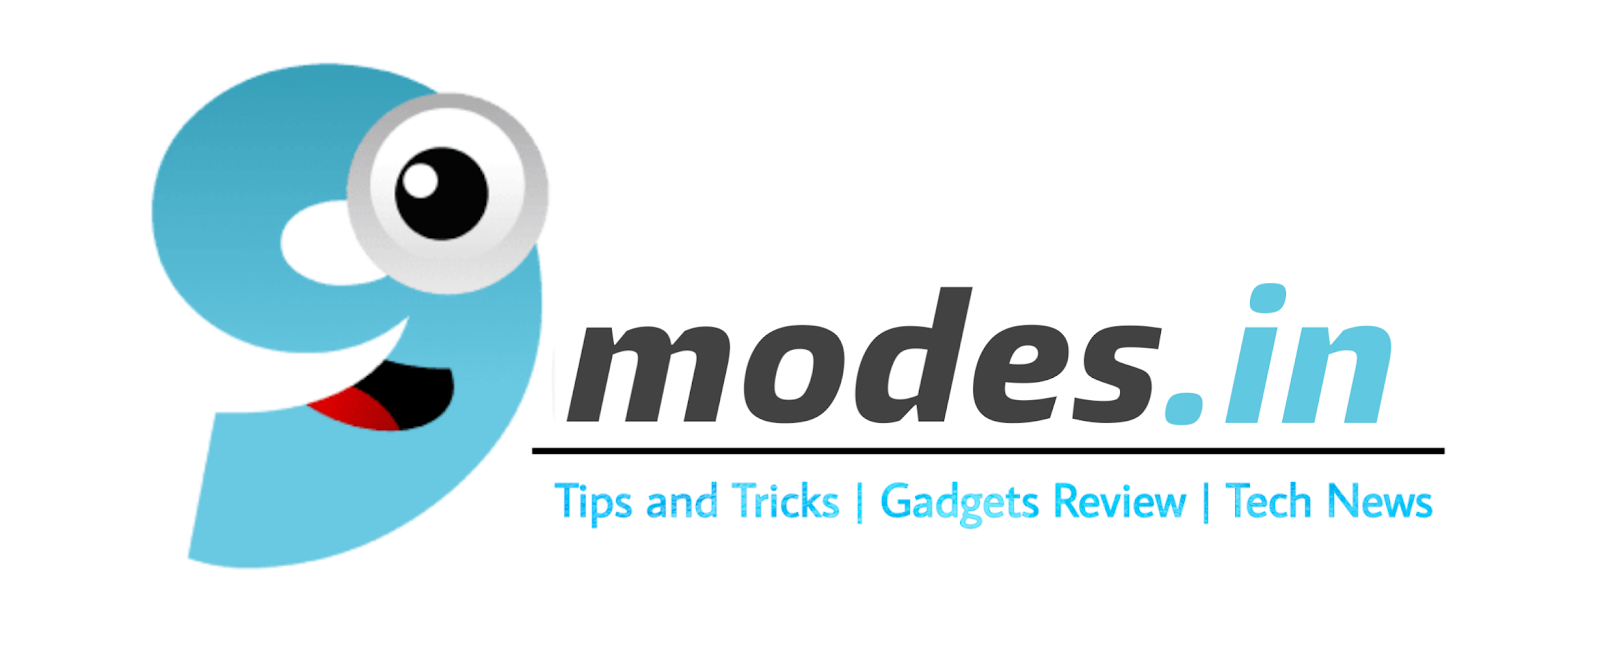 9modes - The ultimate source for Smartphones Review, and Tech content